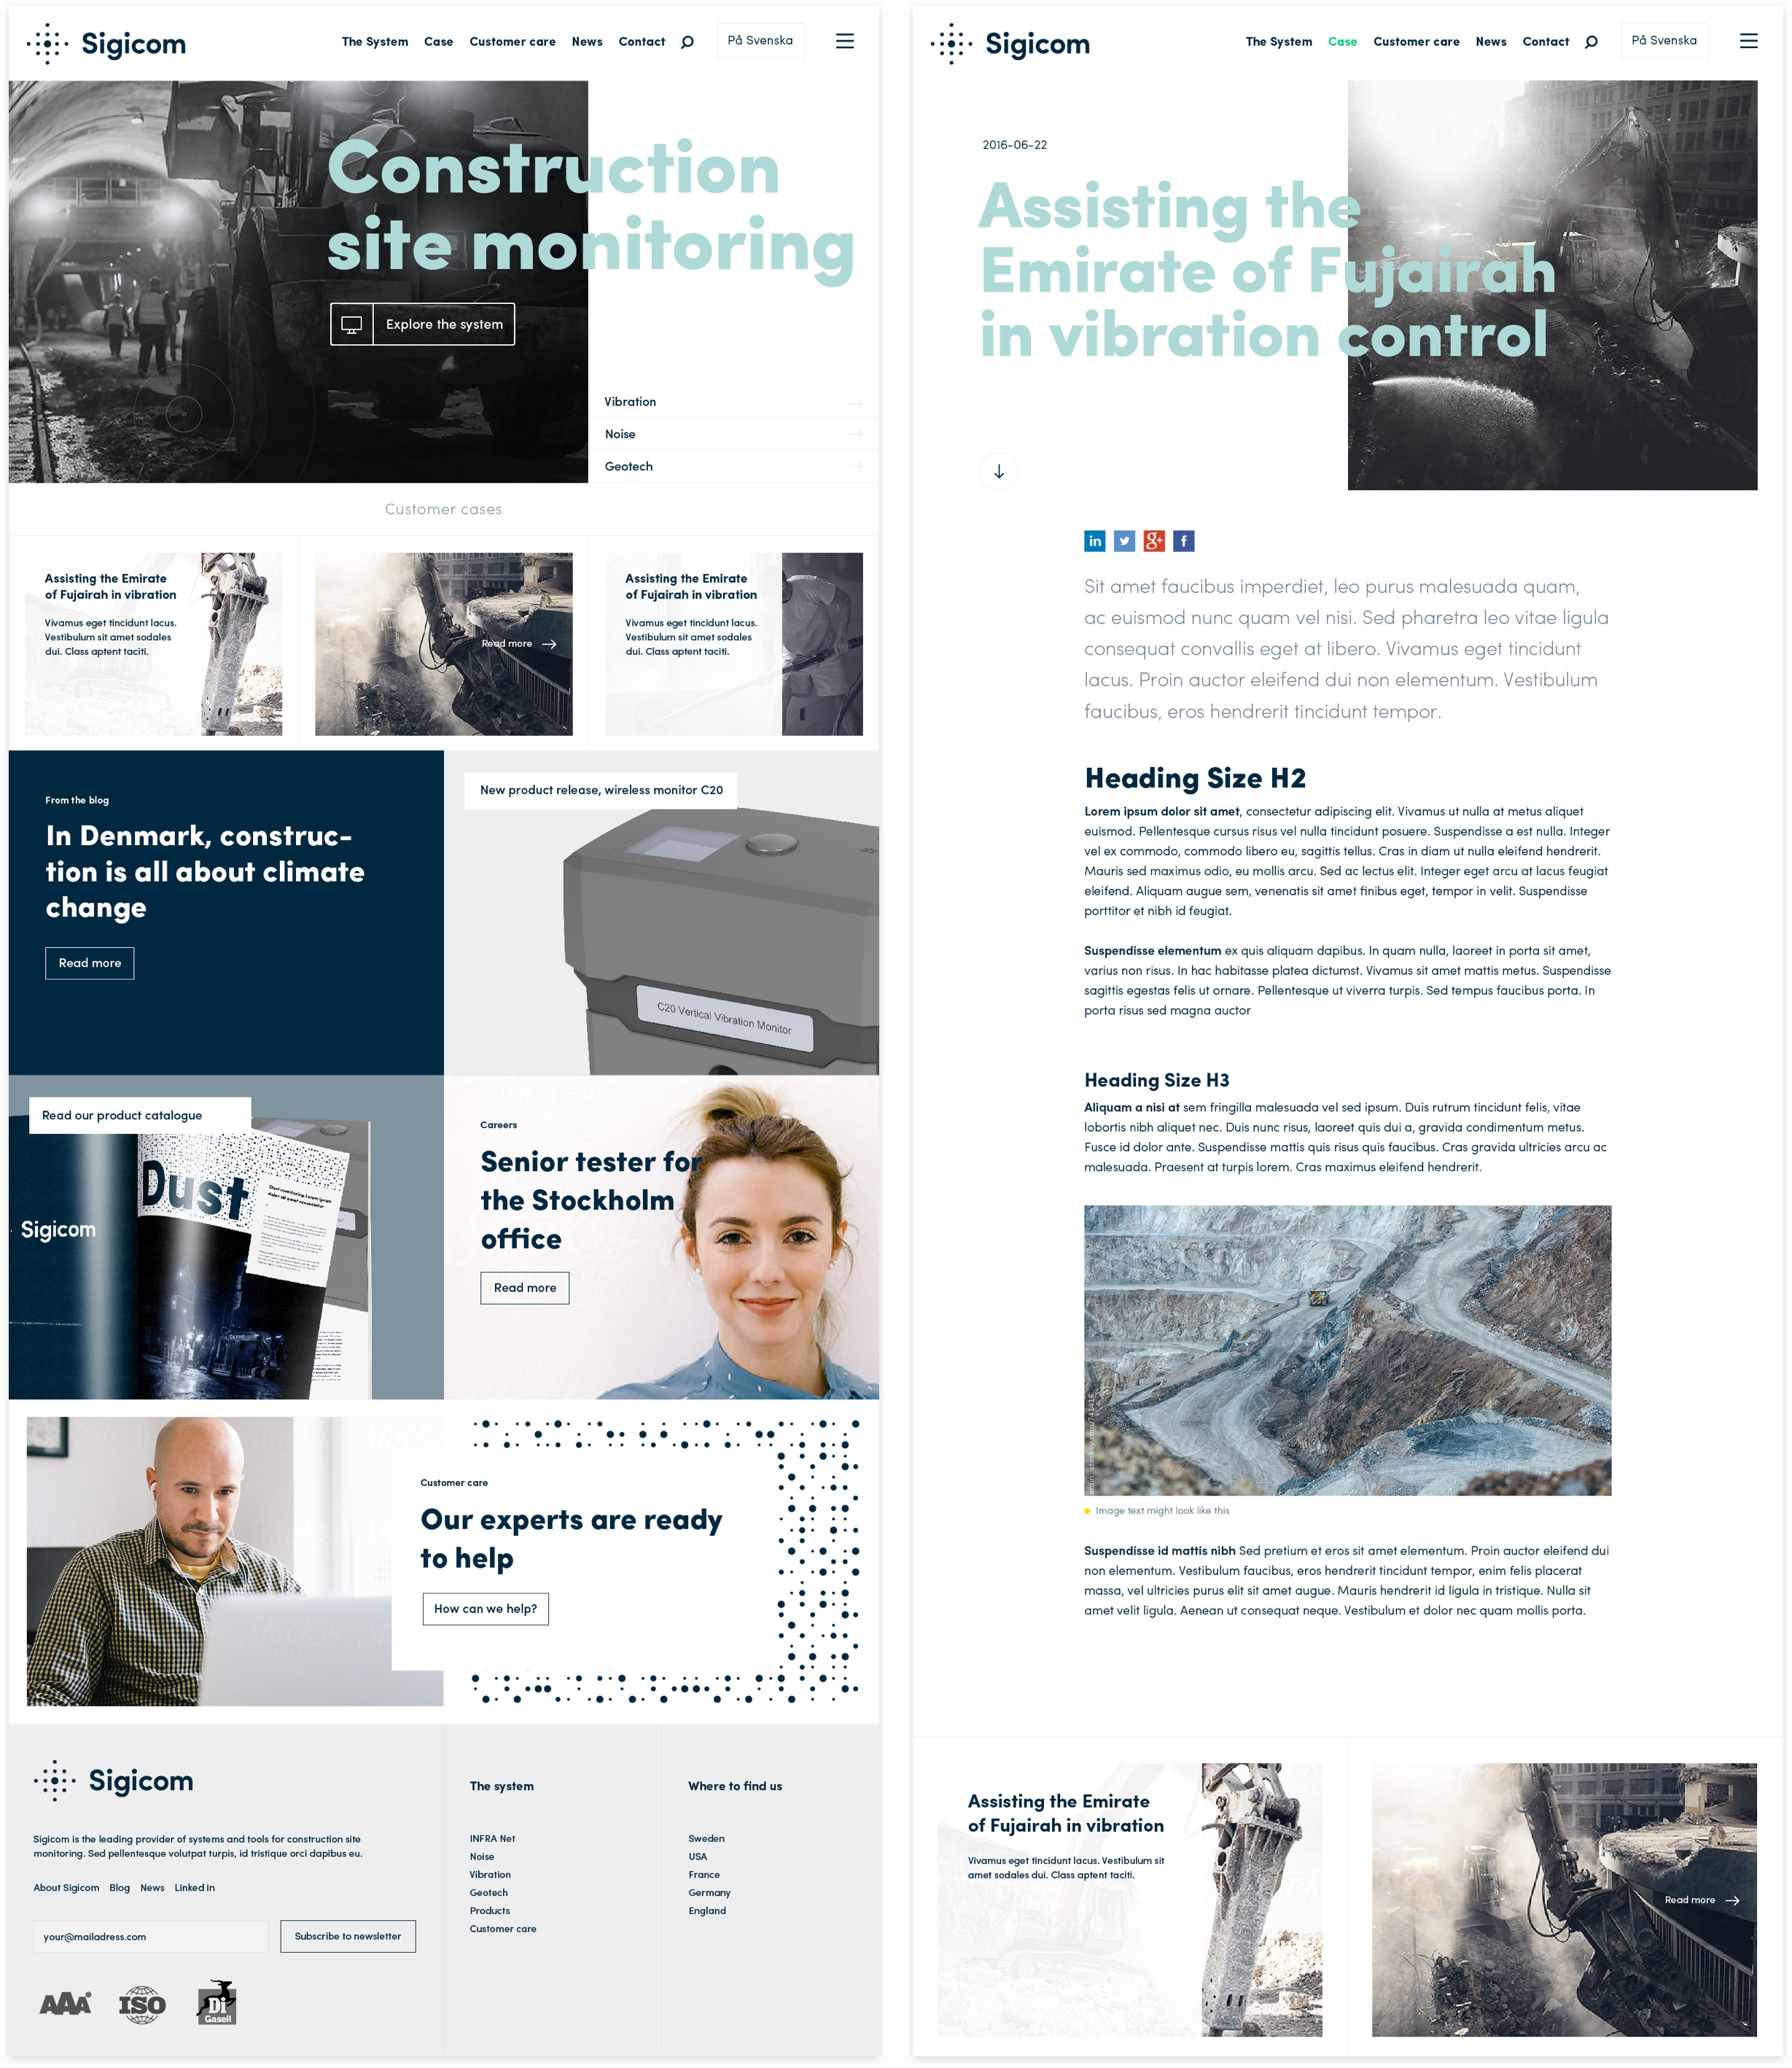 Digital strategy and design for Sigicom brand. Material from the process. Full screens showing Sigicoms start page along with a long read article layout.